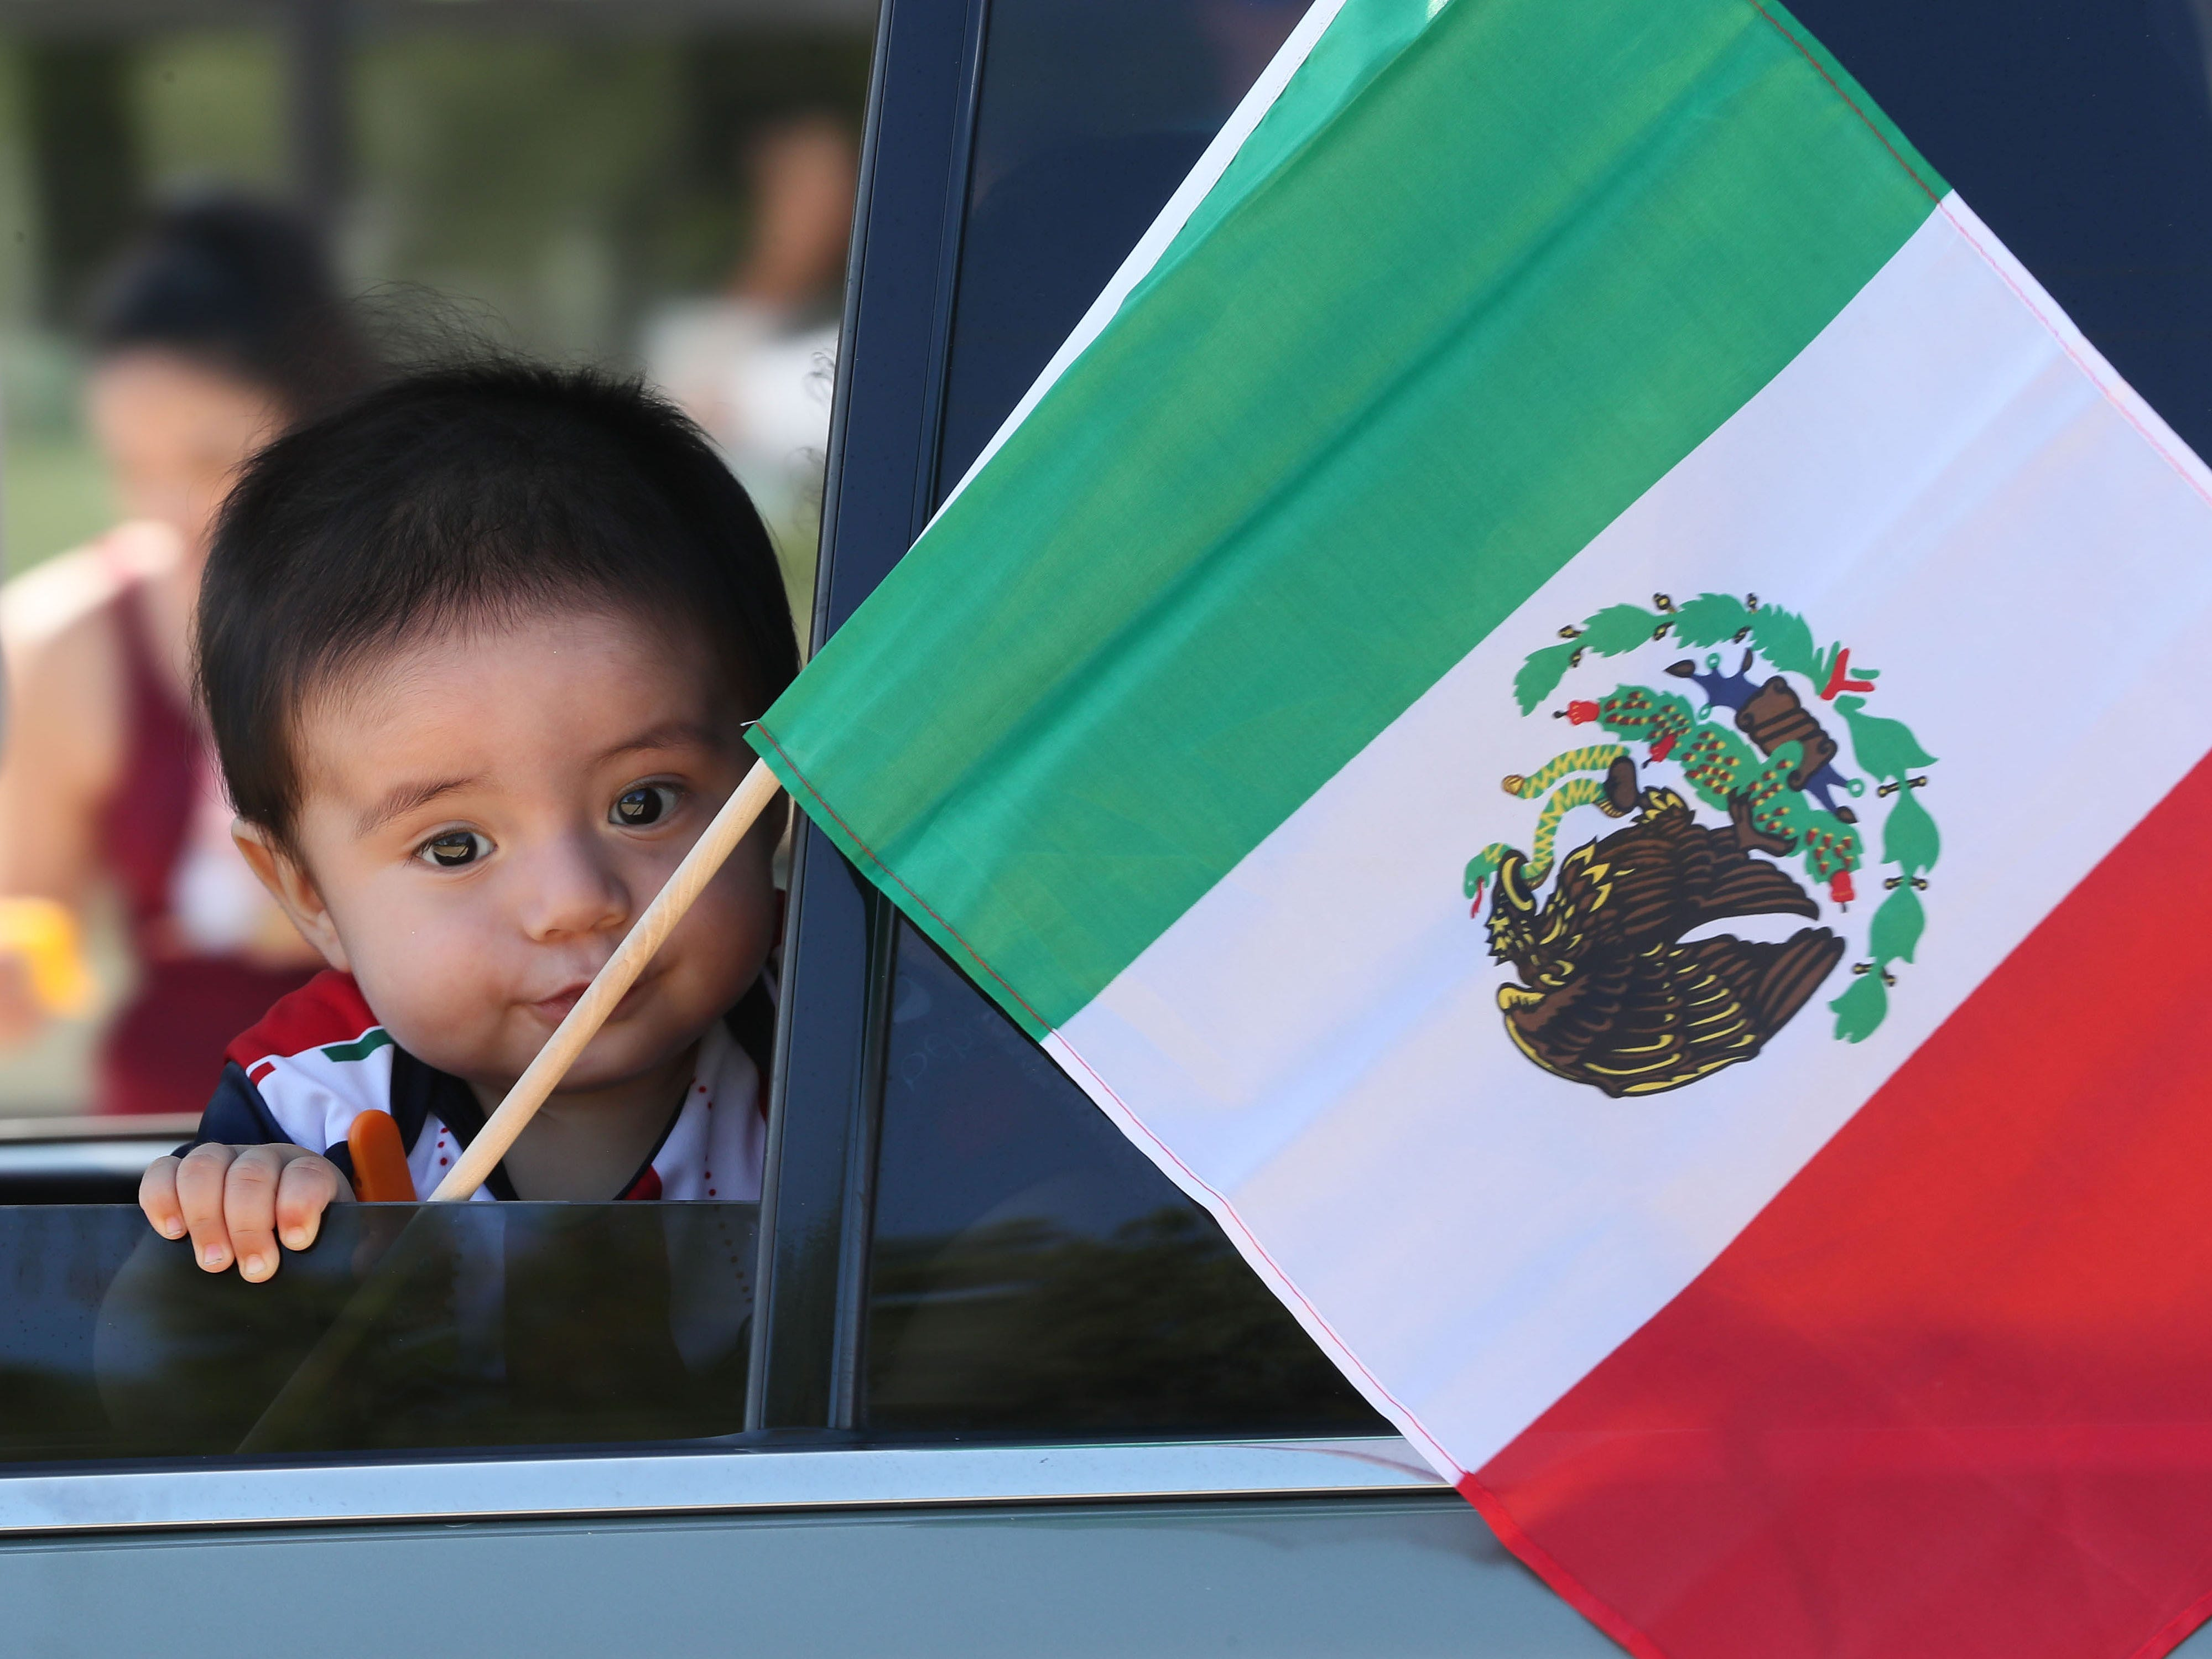 A young boy next to a Mexican flag looks out the window of a car during the independence parade.